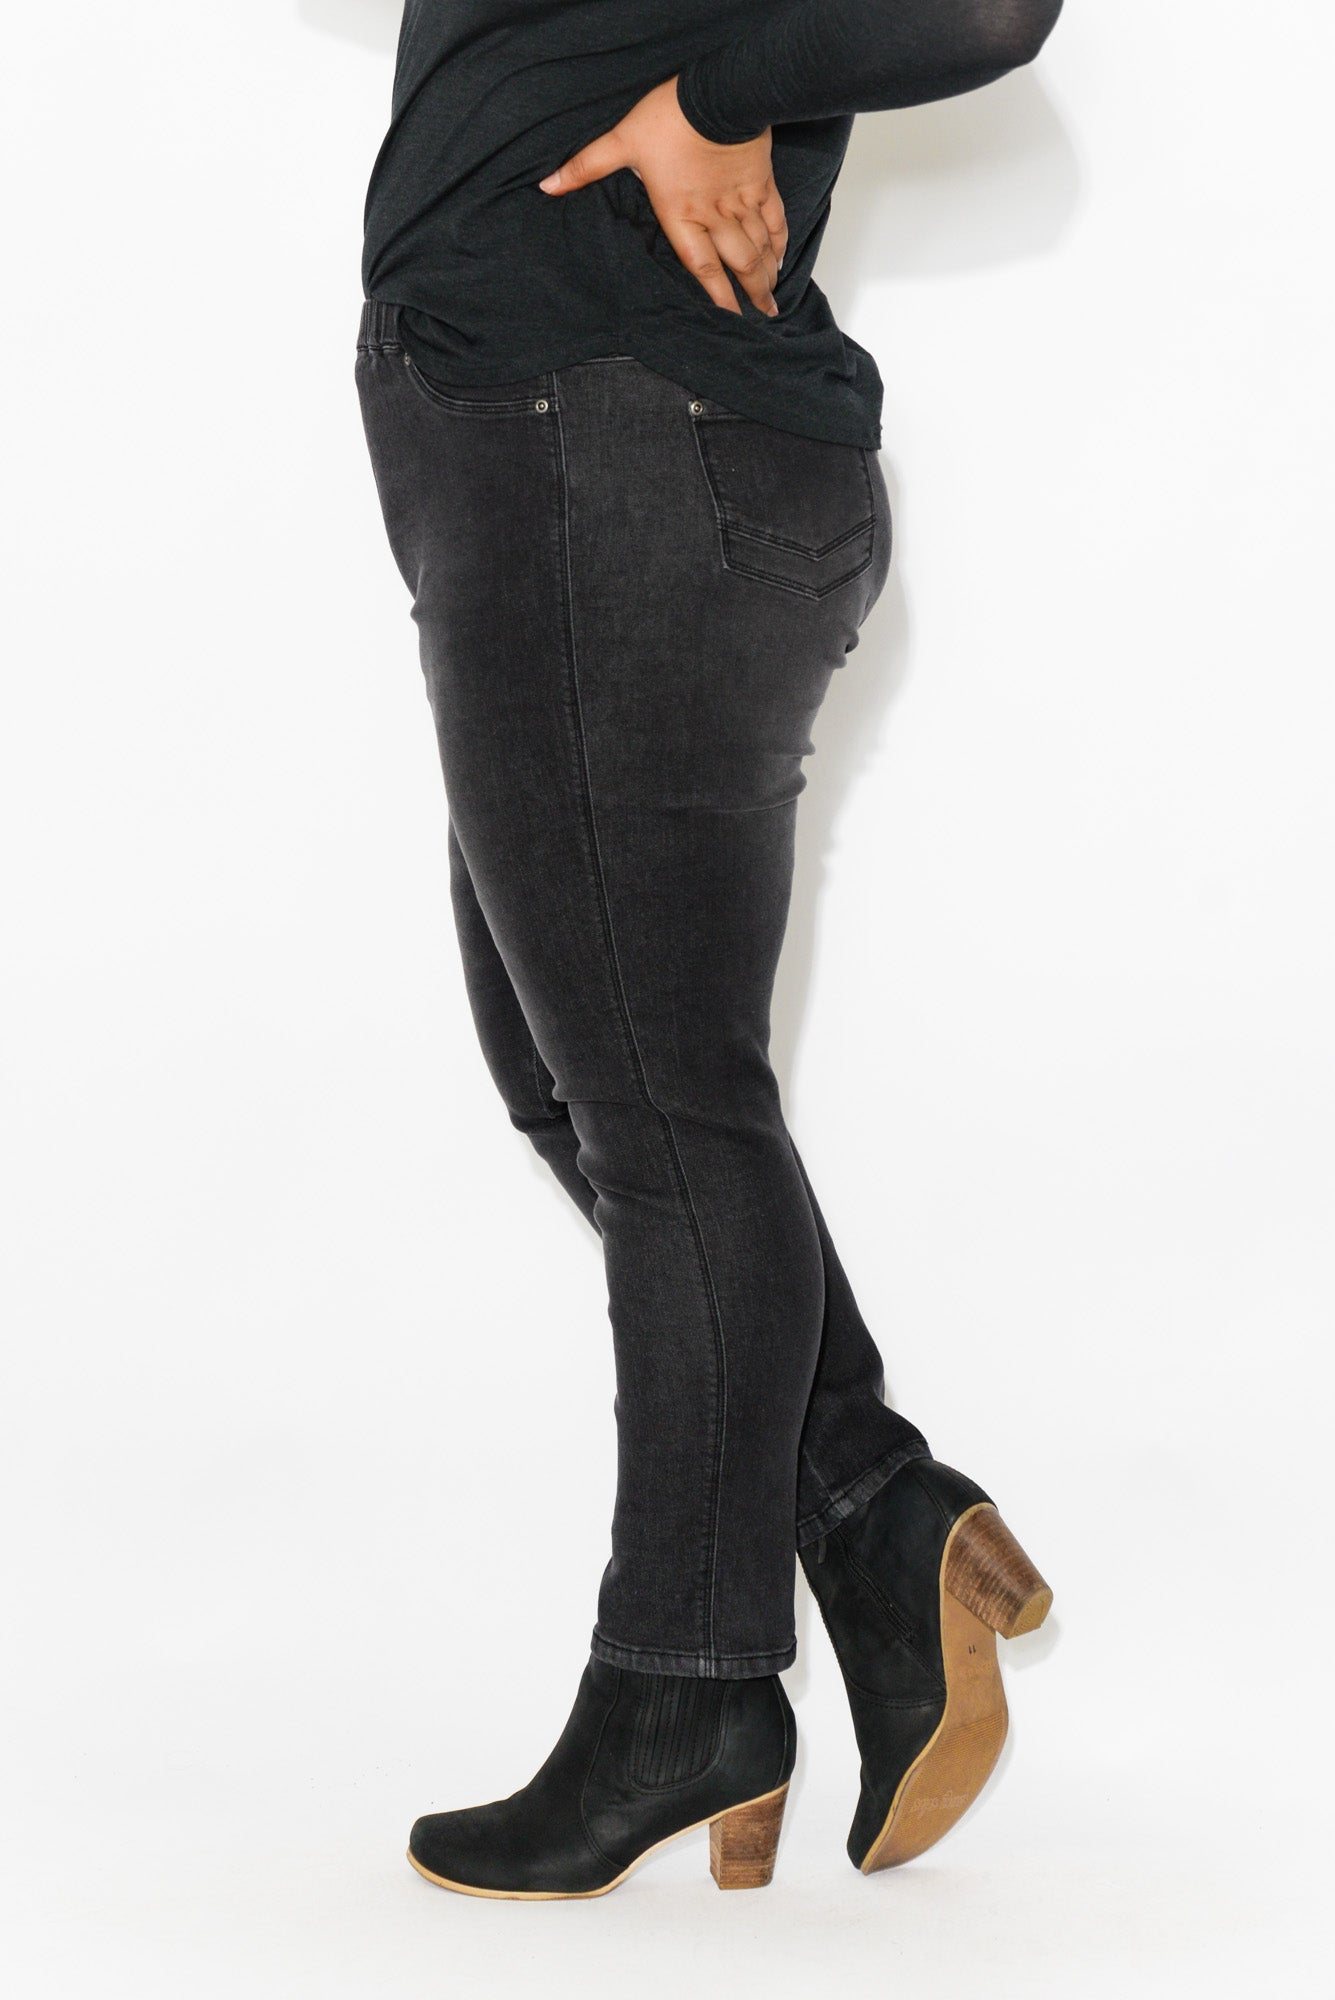 Courtney Black Denim Stretch Jean